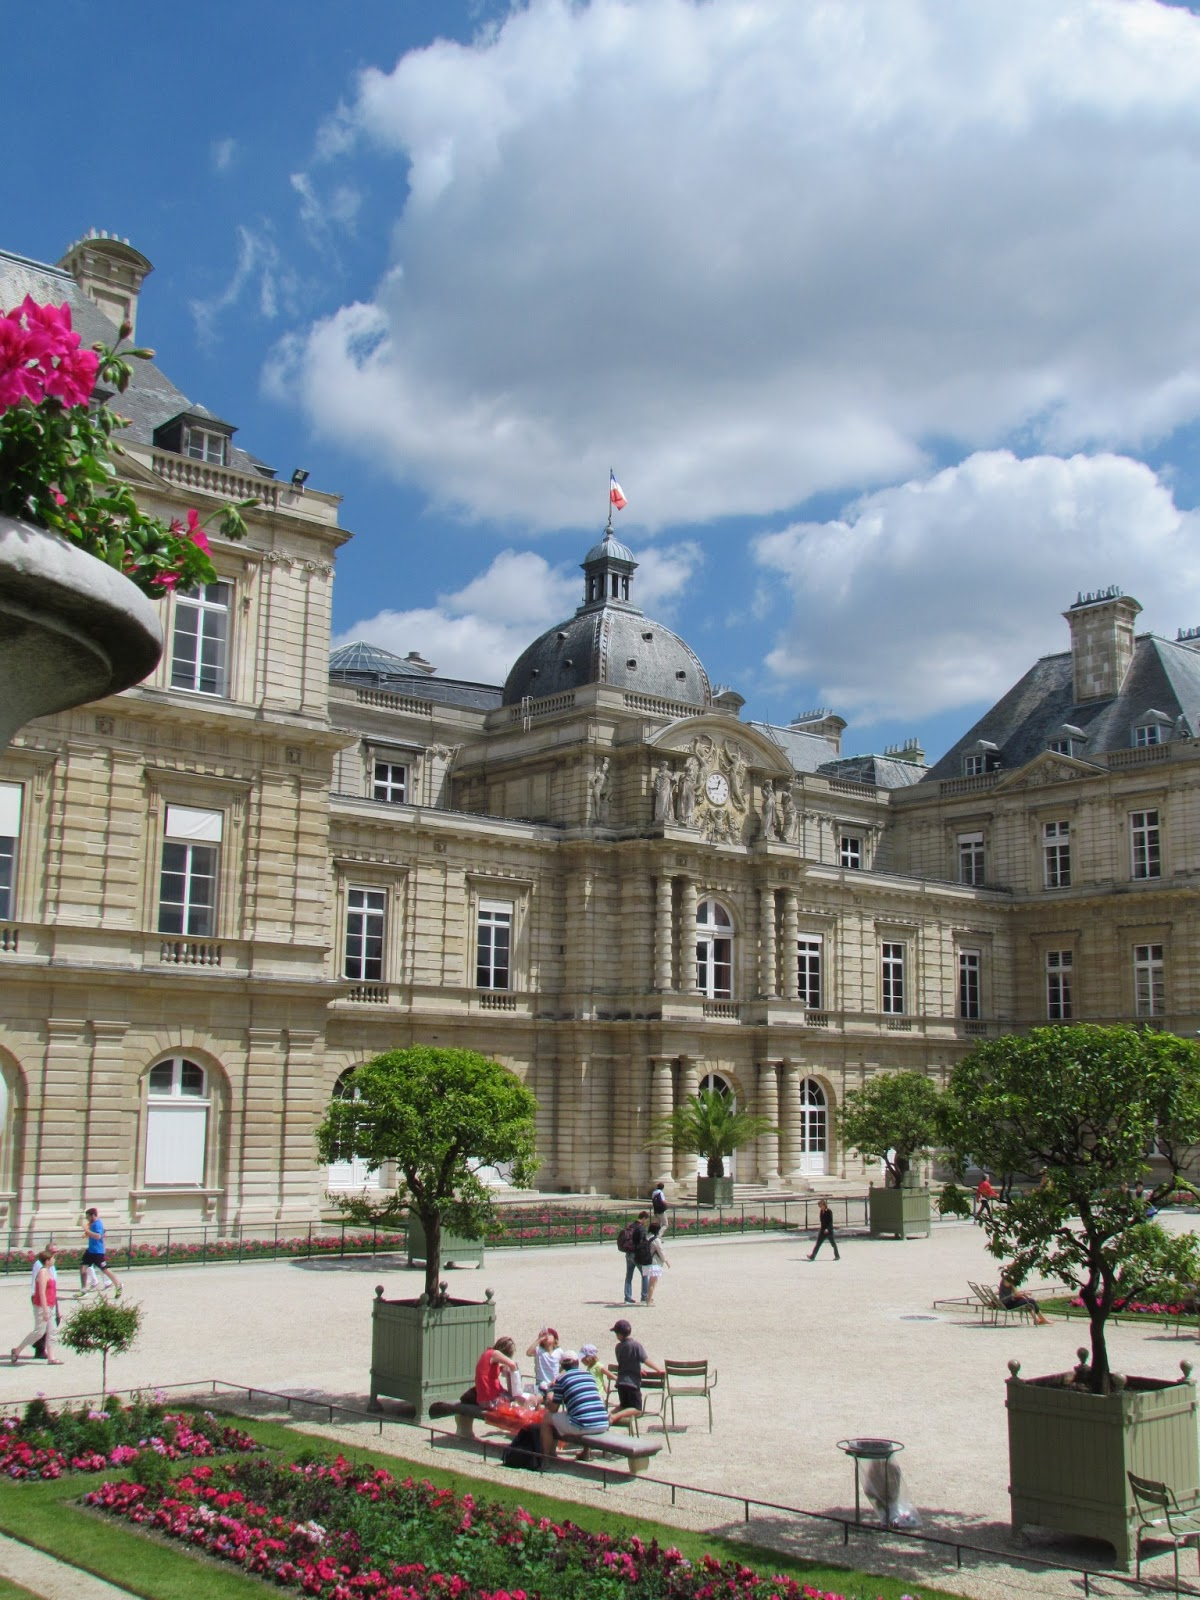 Images of the jardin du luxembourg paris in july 2013 for Jardin luxemburgo